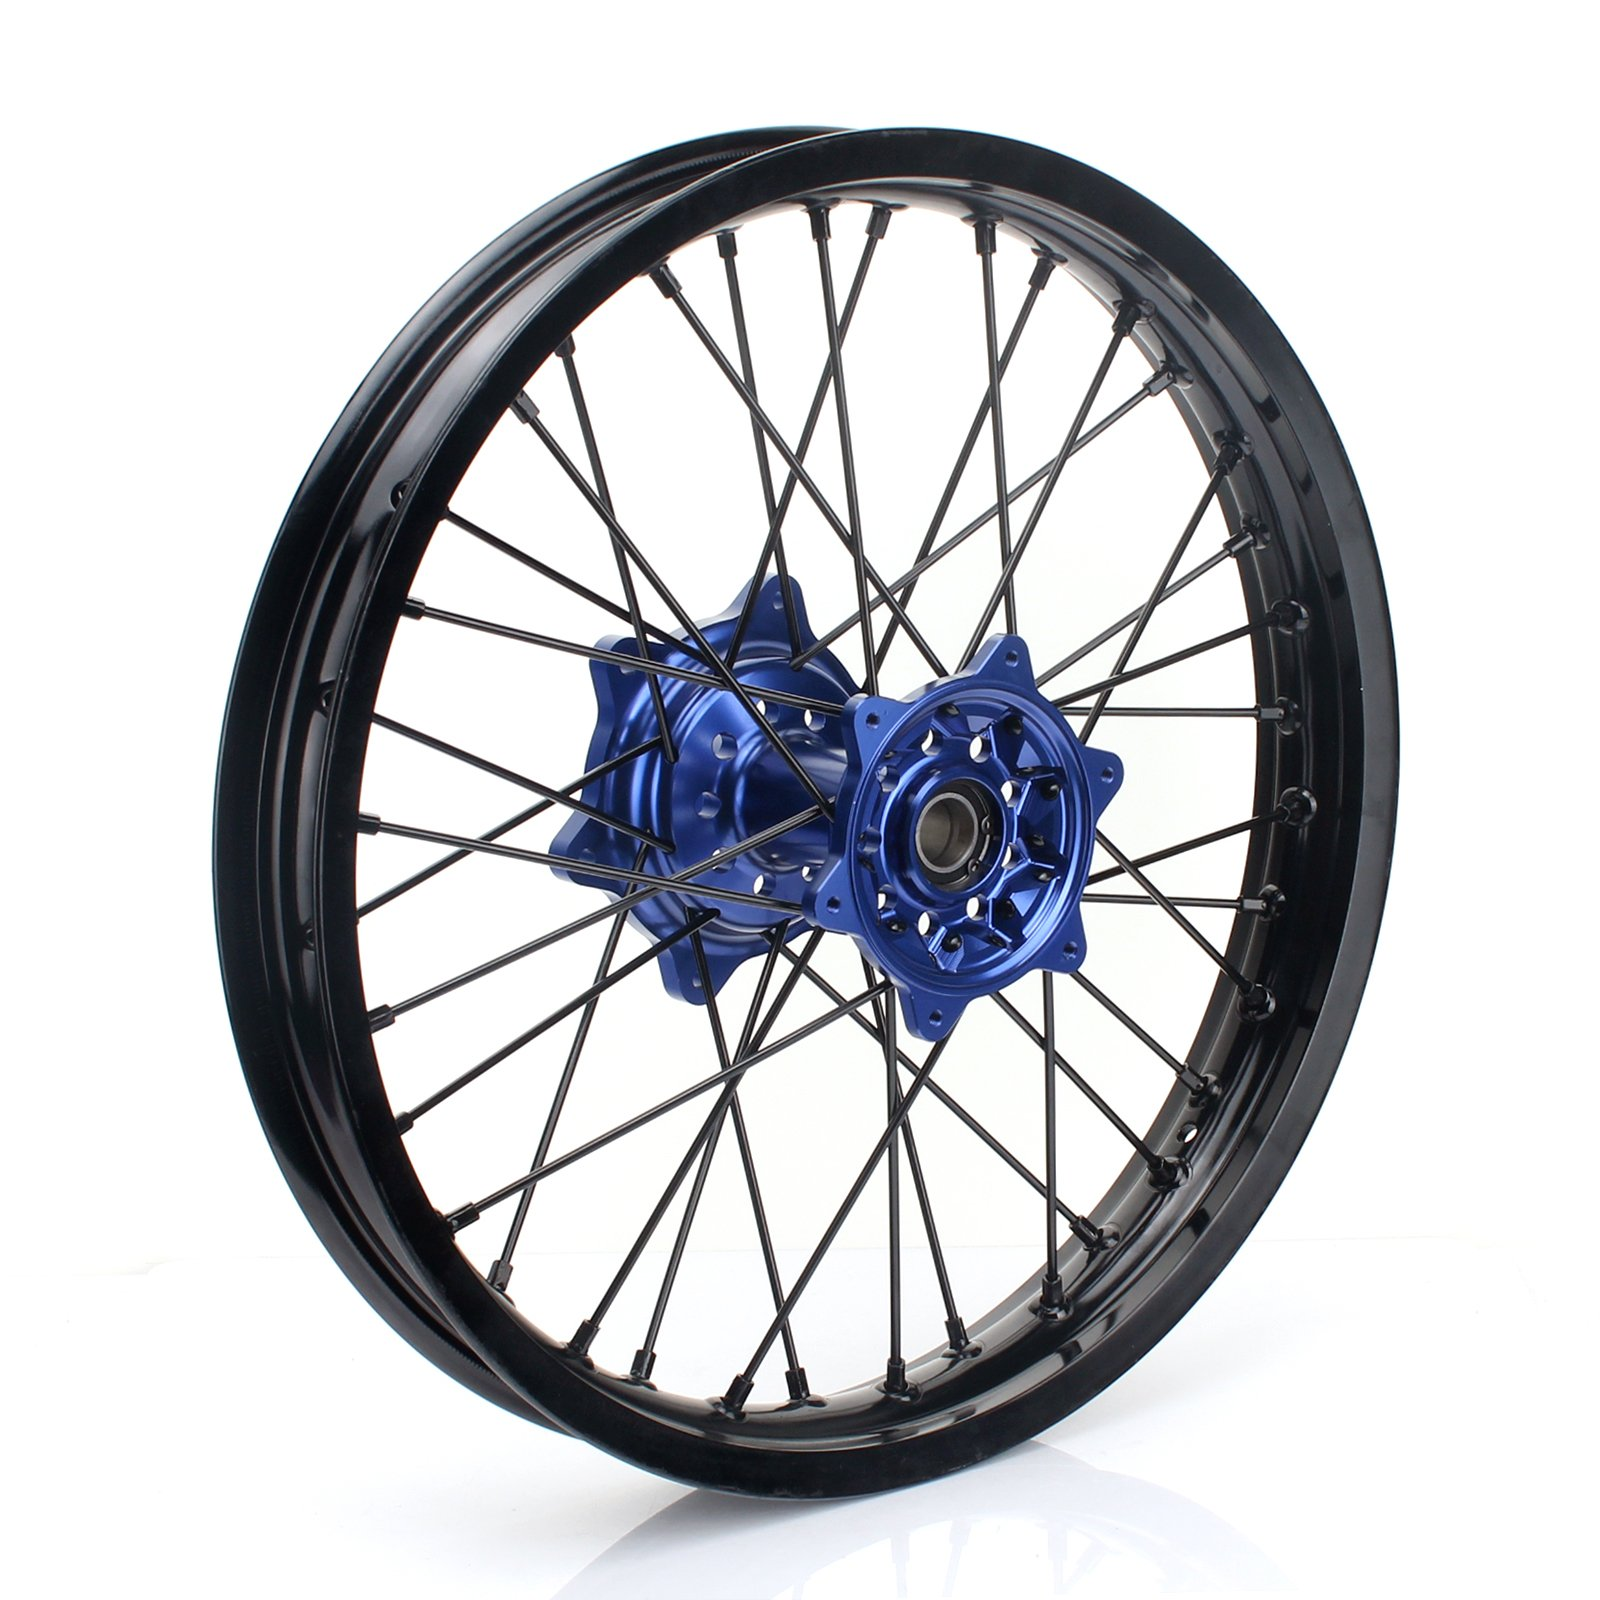 TARAZON 18'' MX Rear Complete Wheel Set Rim Spokes Blue Hub for Yamaha YZ250F YZF250 YZ450F YZF450 2009-2017